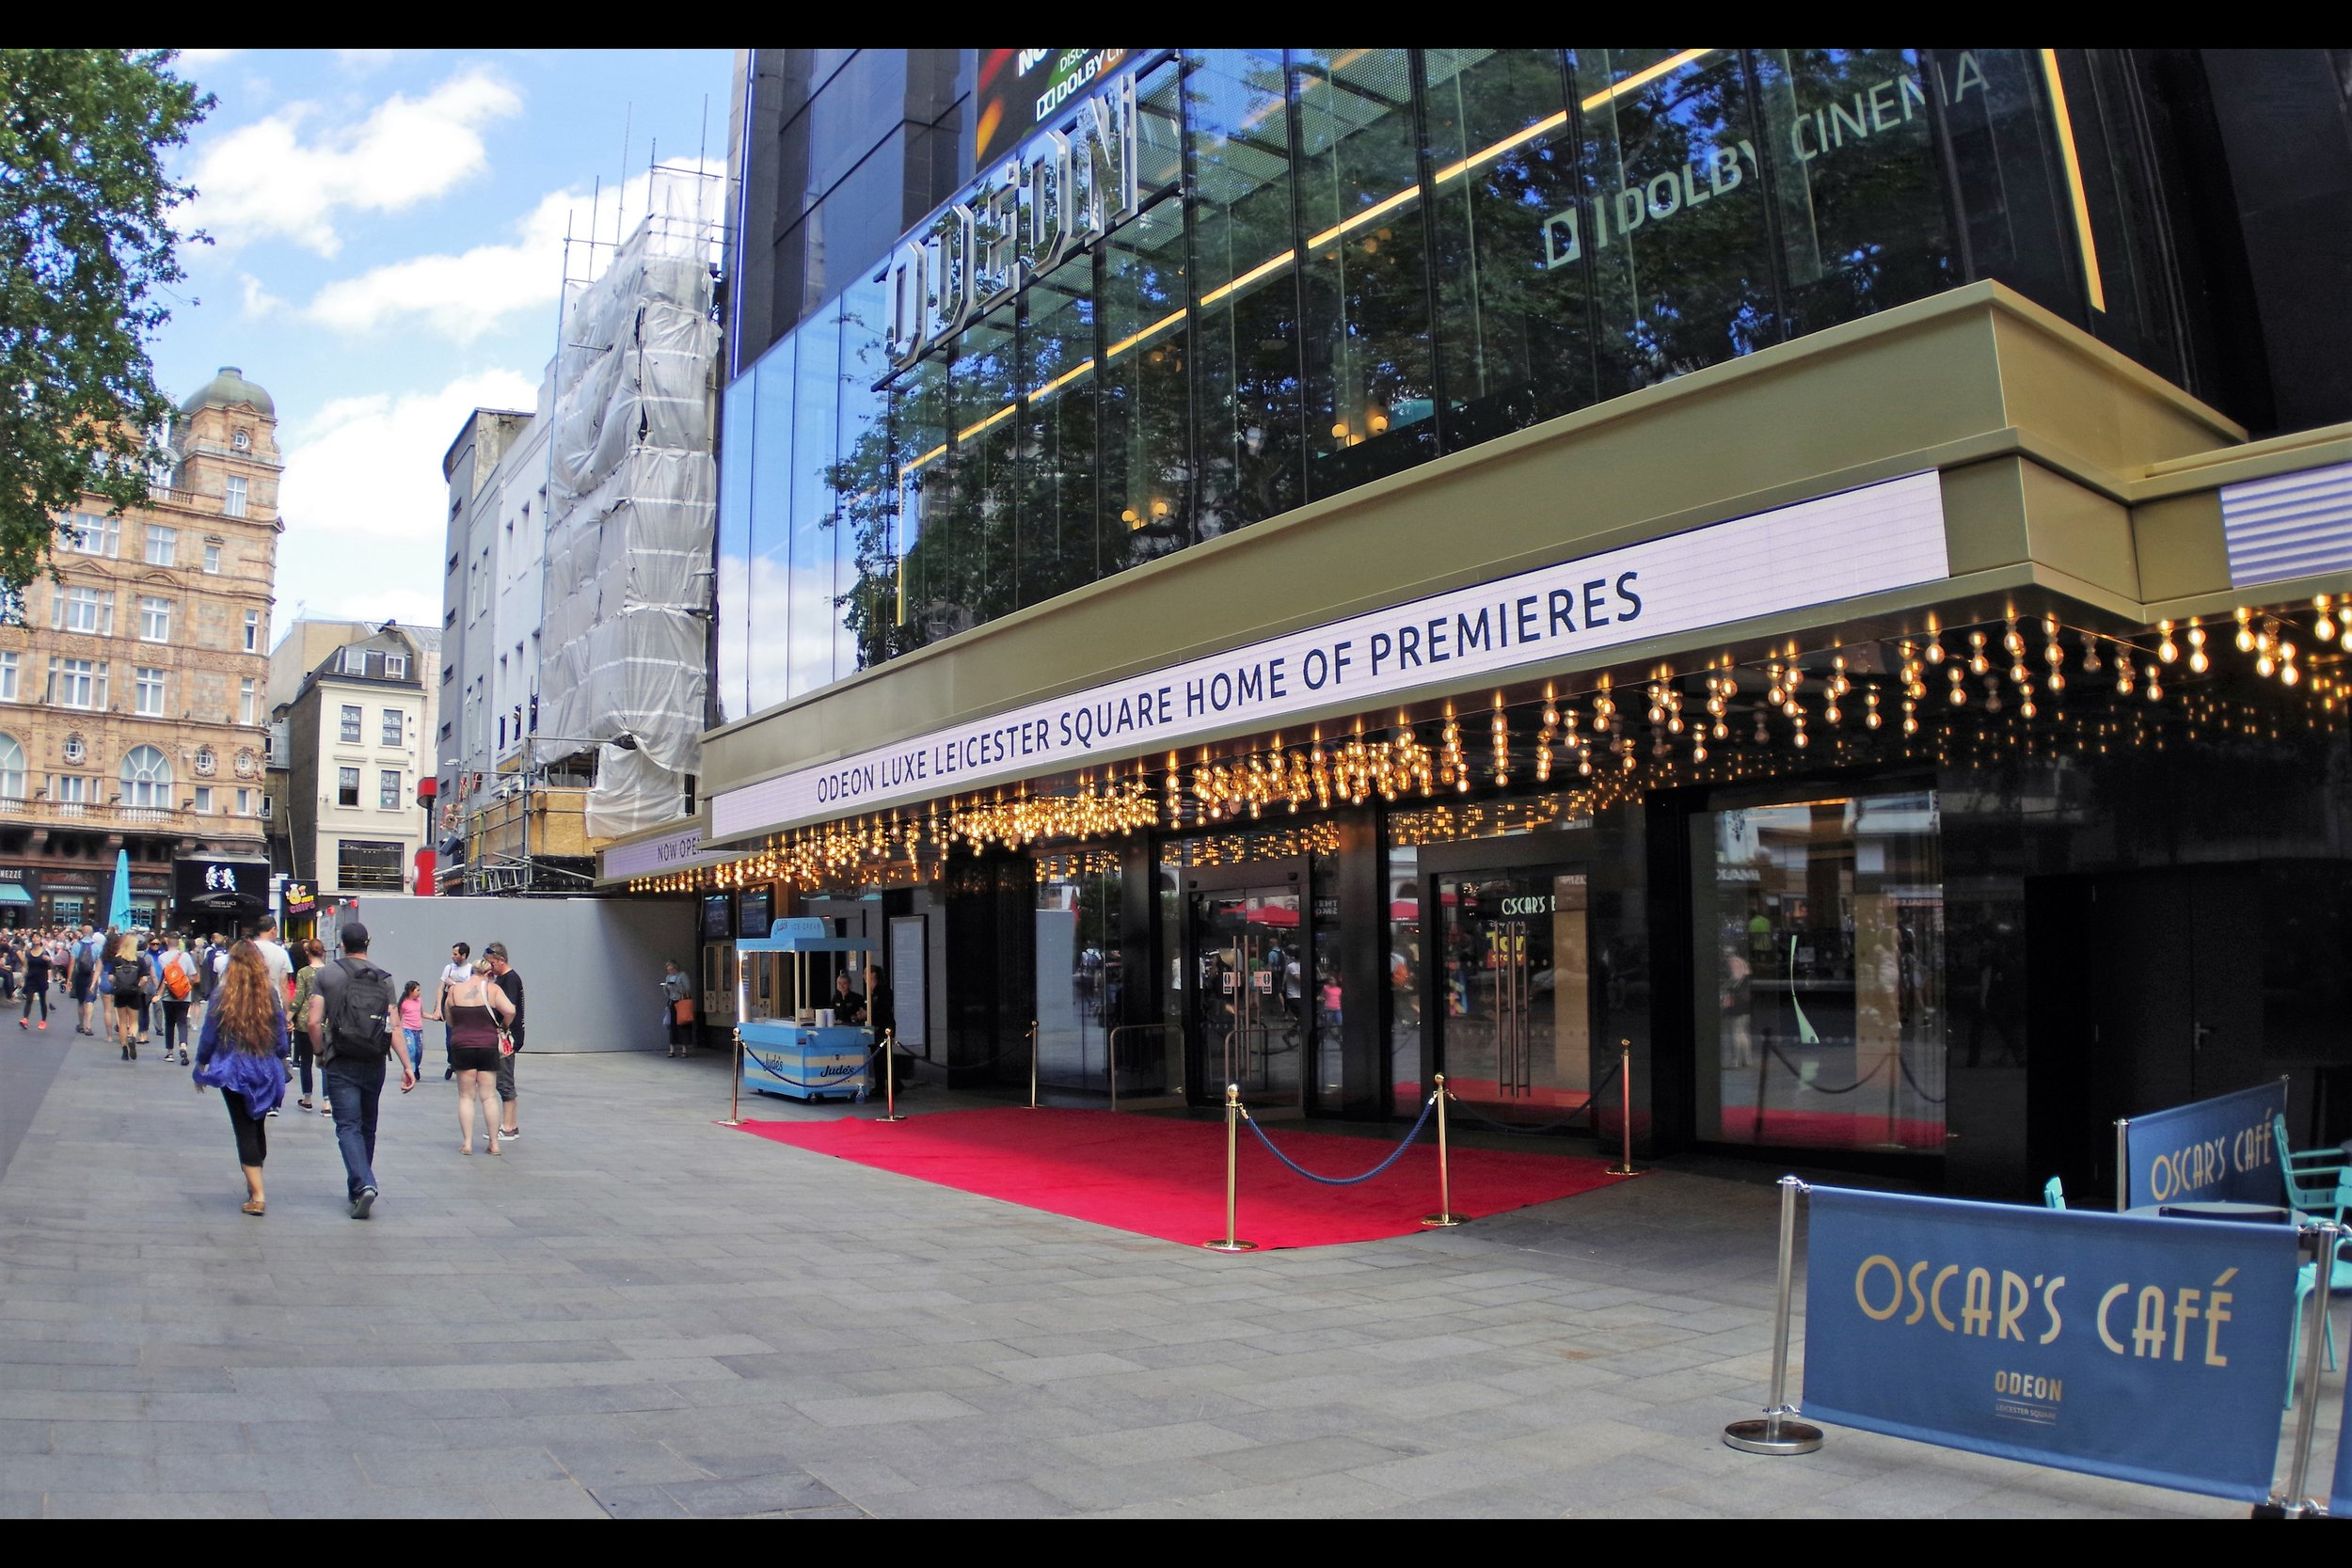 The Odeon Luxe is the self-proclaimed 'Home of Premieres' - but don't let the marquee and the red carpet and the velvet ropes fool you - the event in question is meant to take place at The Cineworld, not Odeon..